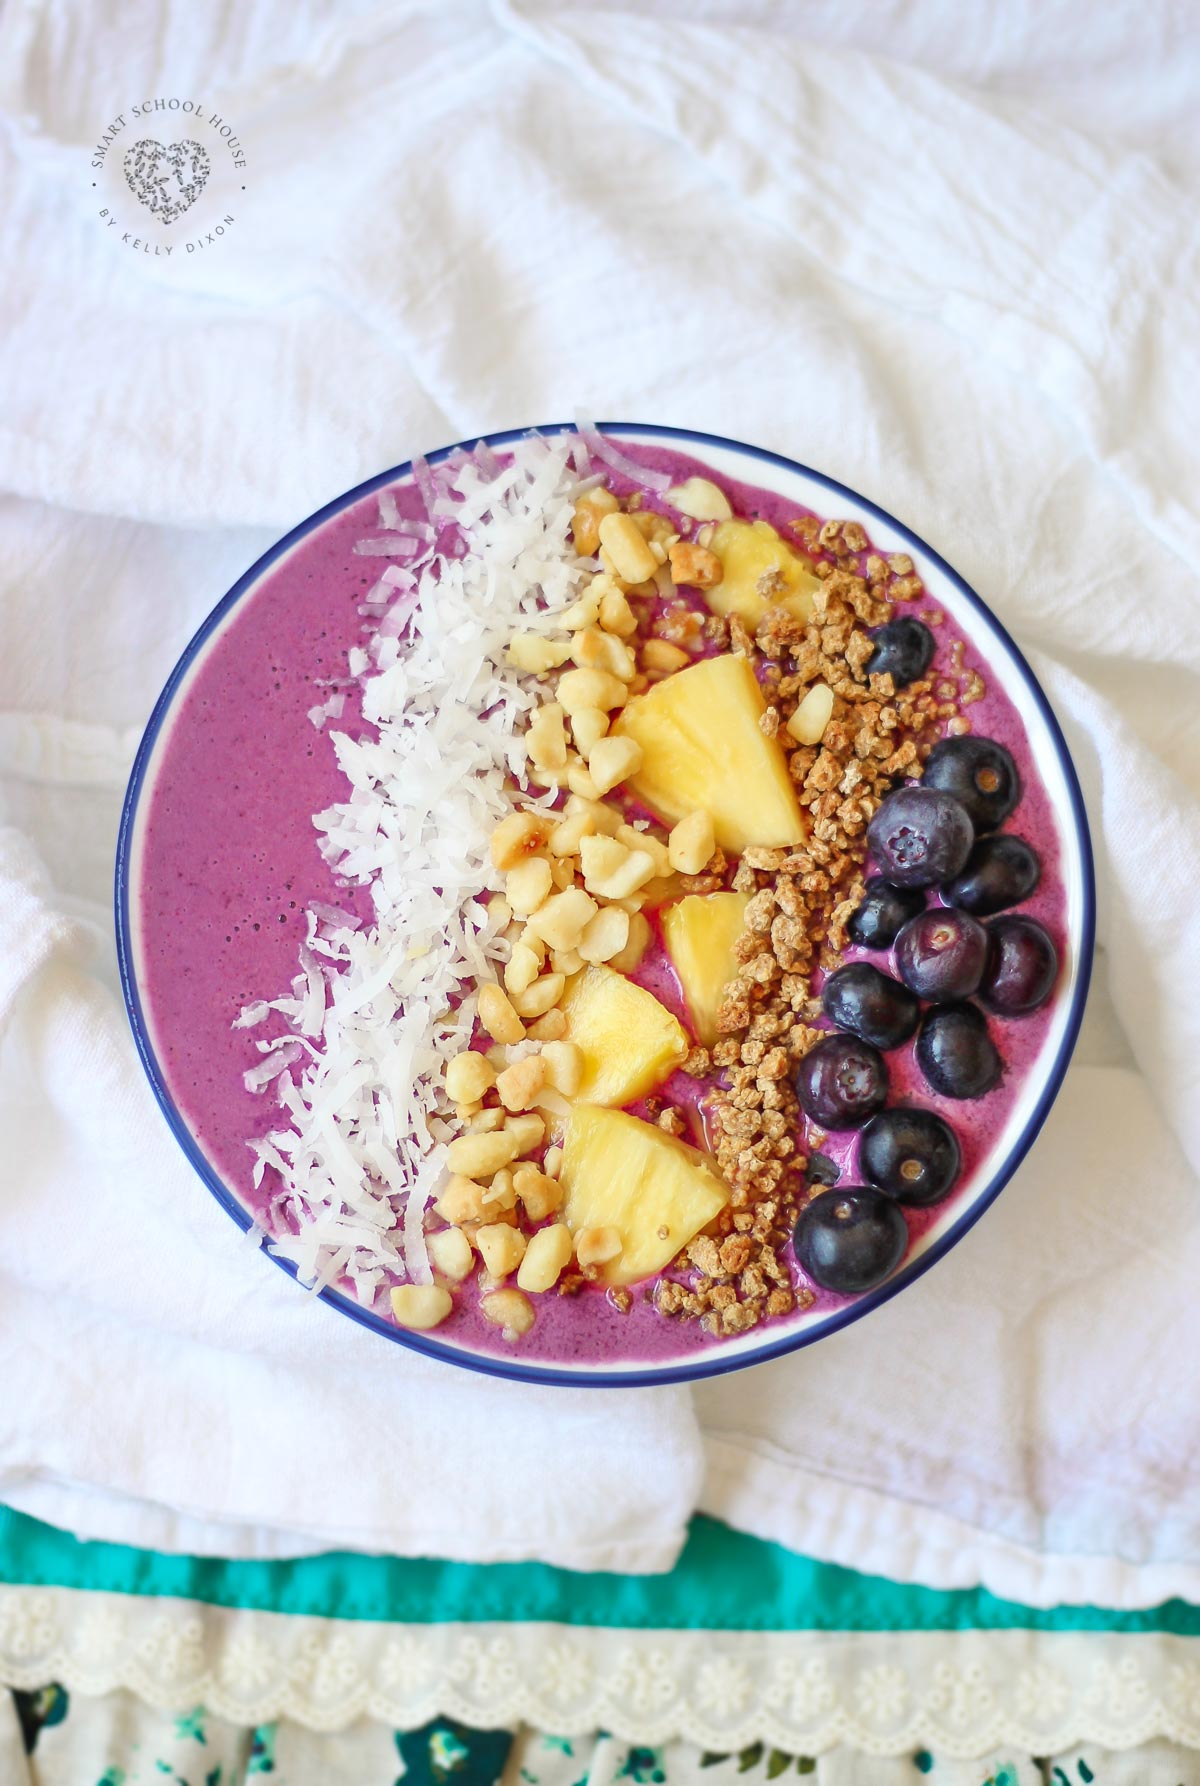 This Tropical Smoothie Bowl is ultra refreshing and delicious. The smoothie bowl is ideal breakfast or lunch and can even be a snack or dessert.